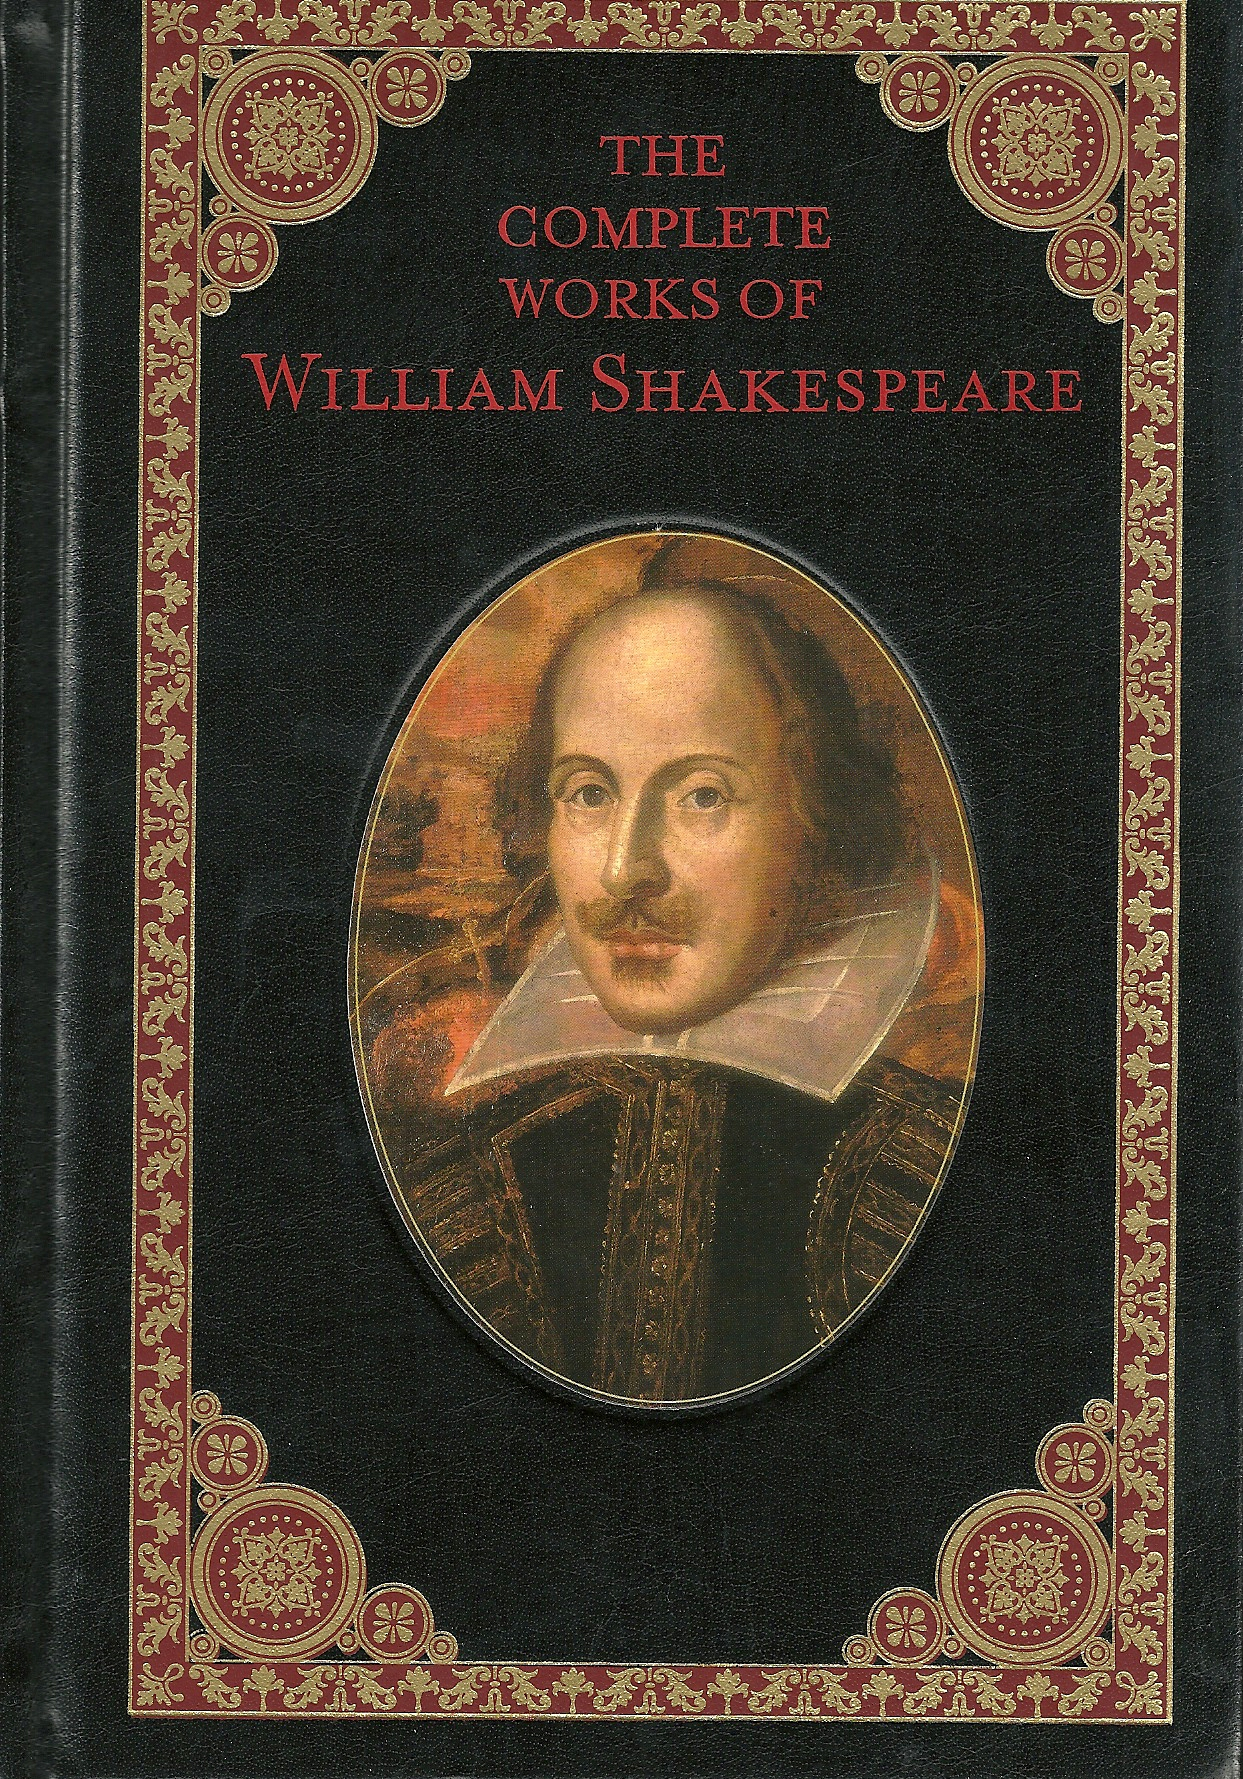 William Shakespeare in World Literature - Essay